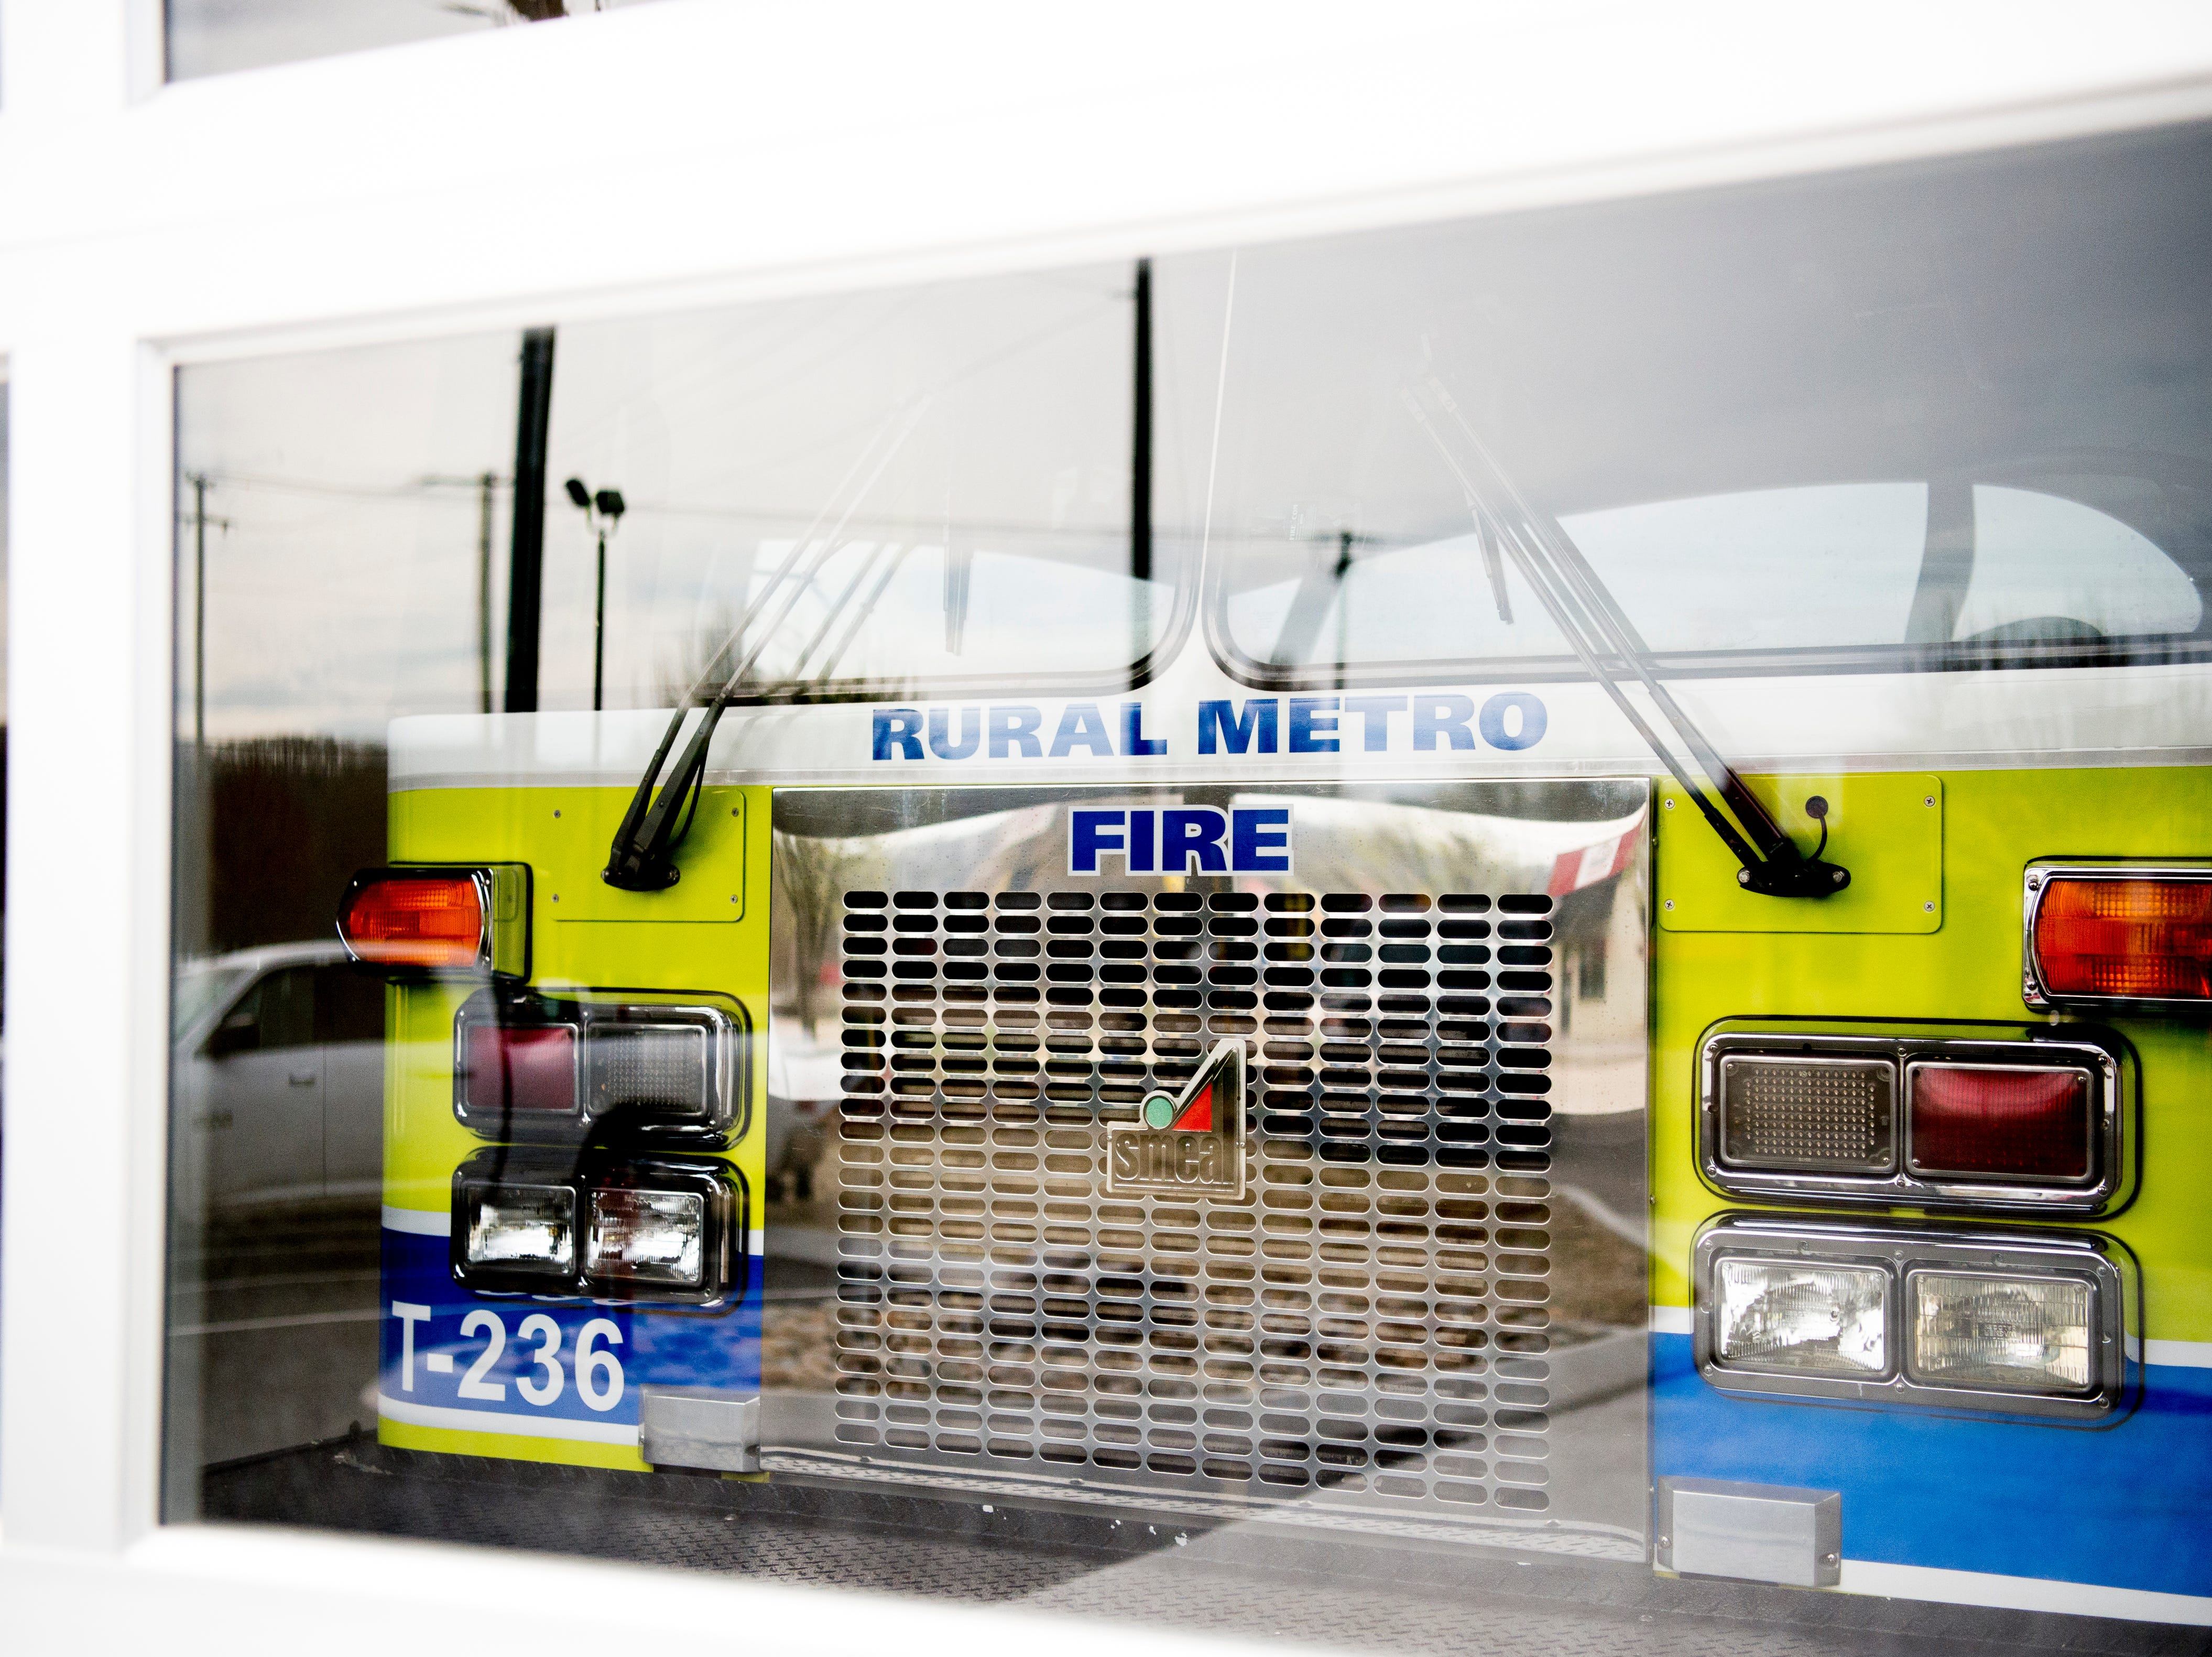 Rural Metro Truck 236 parked in the engine bay at the new Rural Metro Fire Station 36, 7615 Norman Jack Lane, in Powell, Tennessee on Wednesday, March 13, 2019. The station has been operational since early February and is hosting an open house and grand opening March 14 from 10am-7pm.